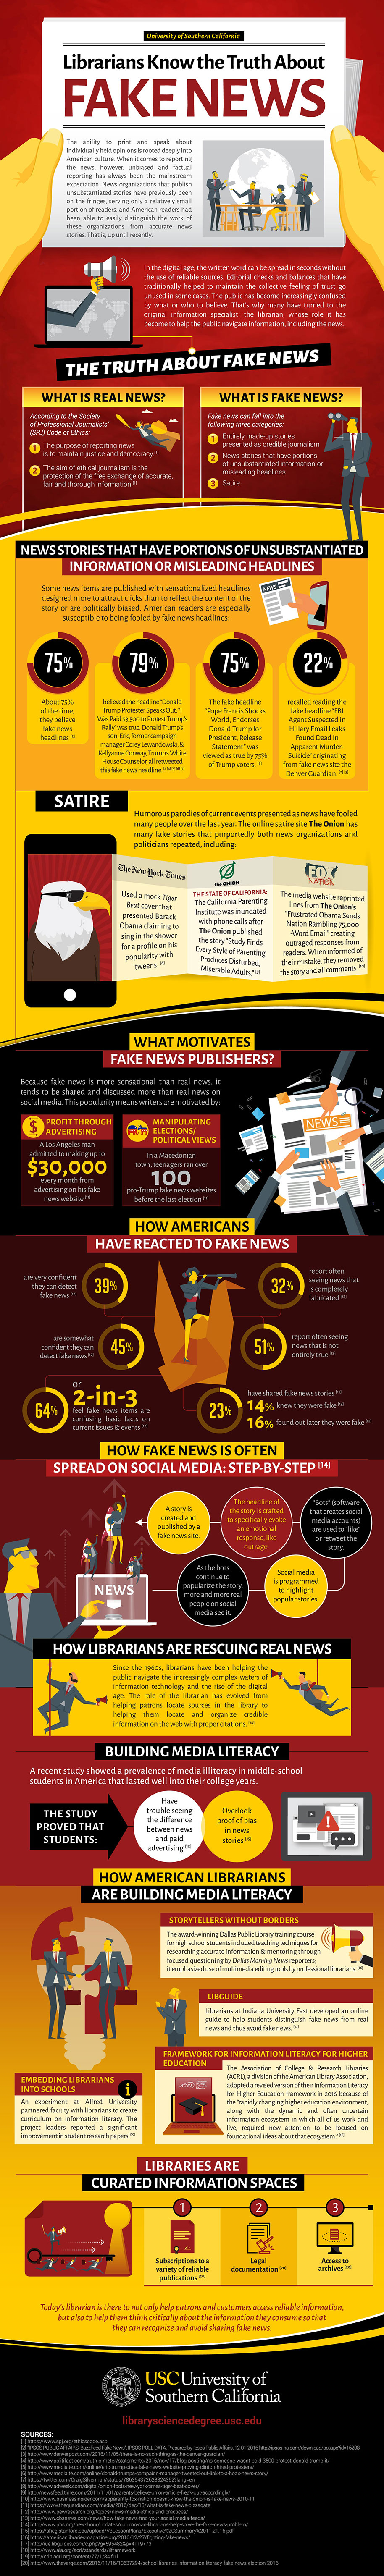 An infographic about the librarian's role in stopping the fake news epidemic.